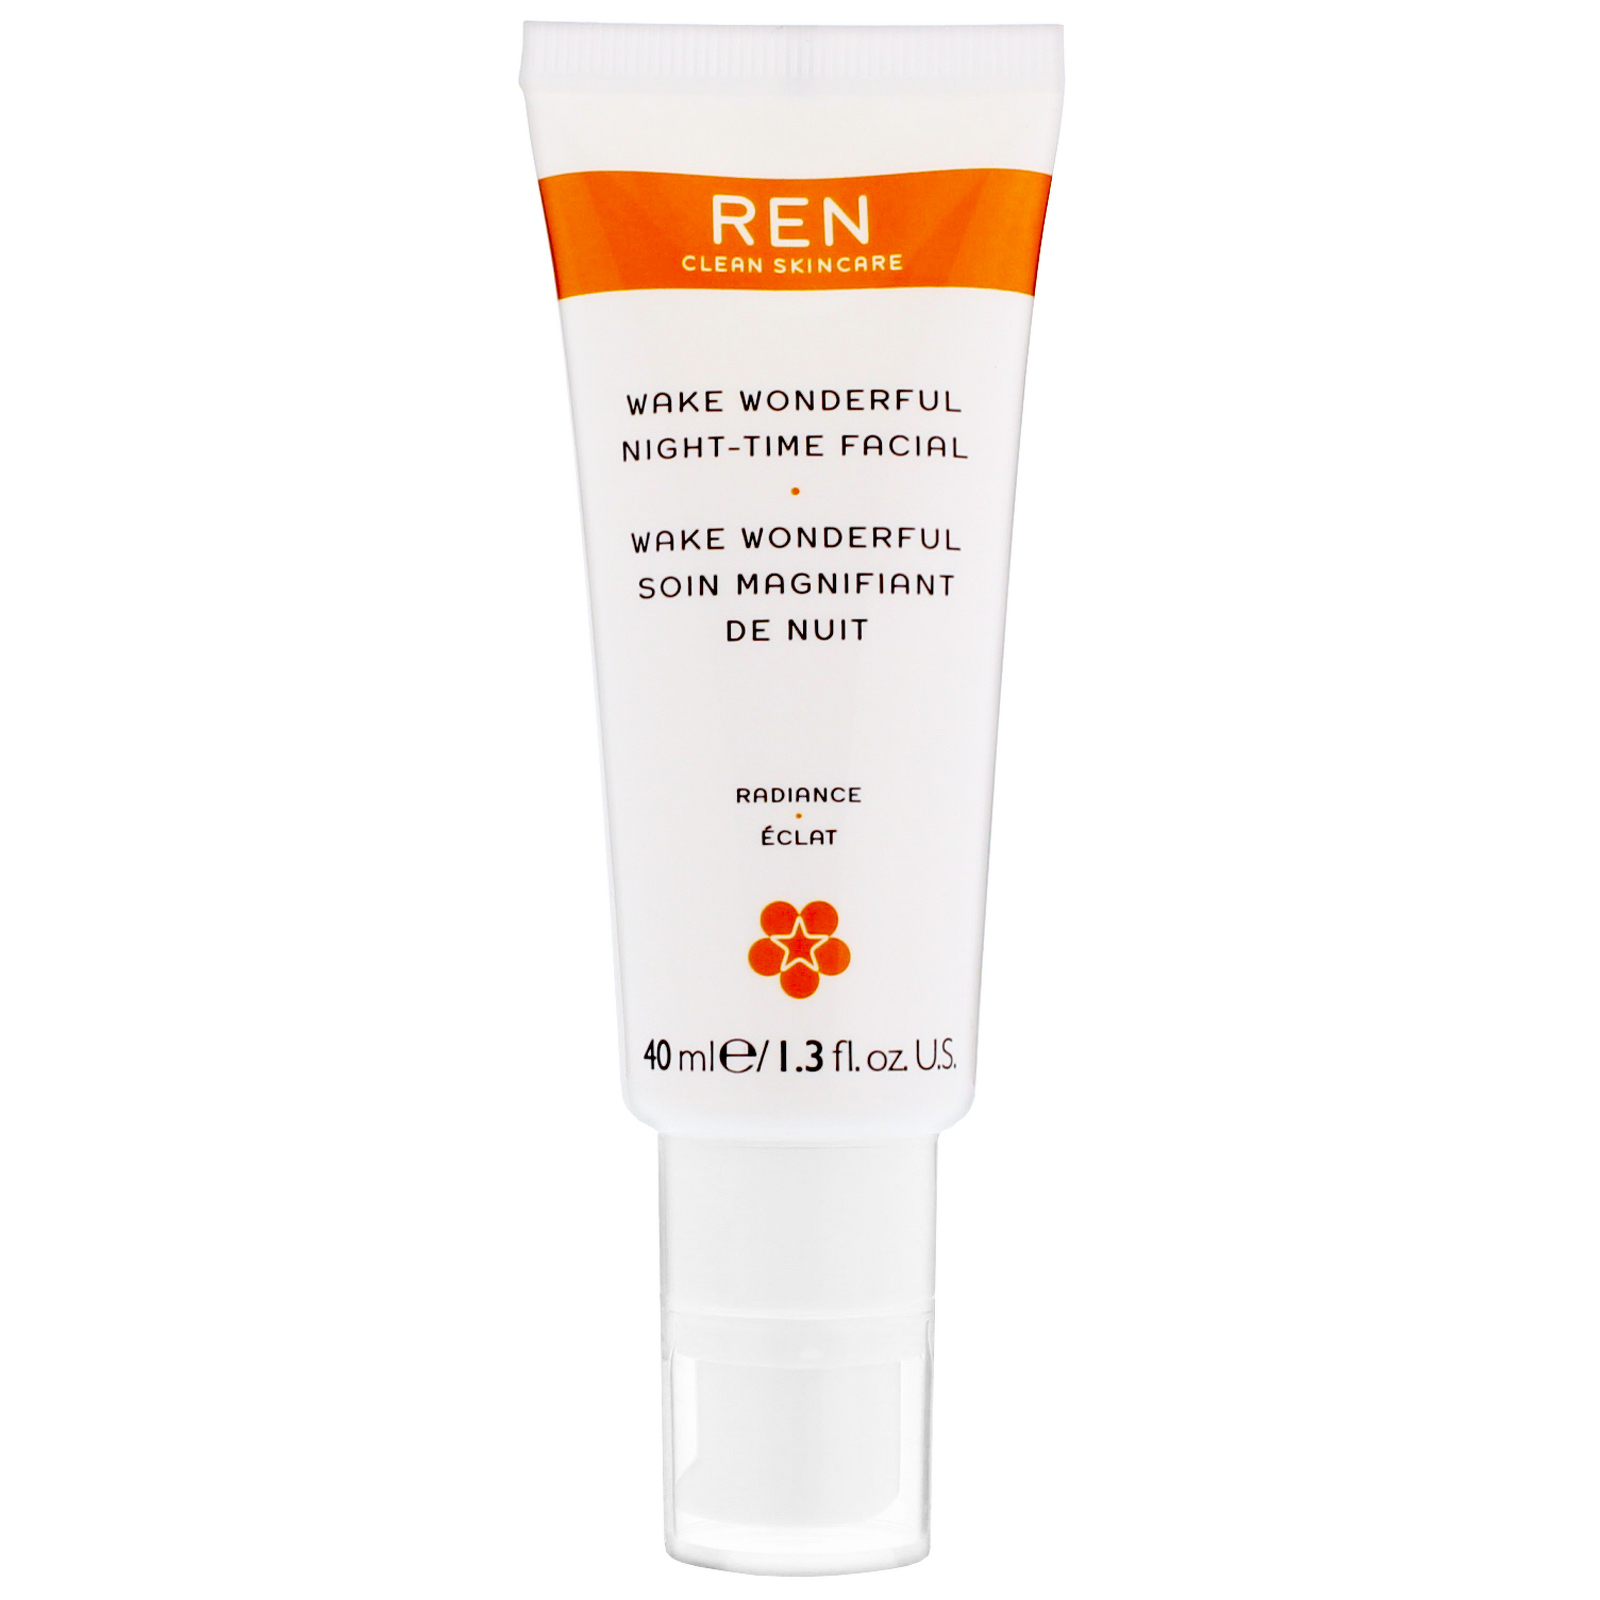 REN Clean Skincare Face Wake Wonderful Night-Time Facial 40ml / 1.3 fl.oz.